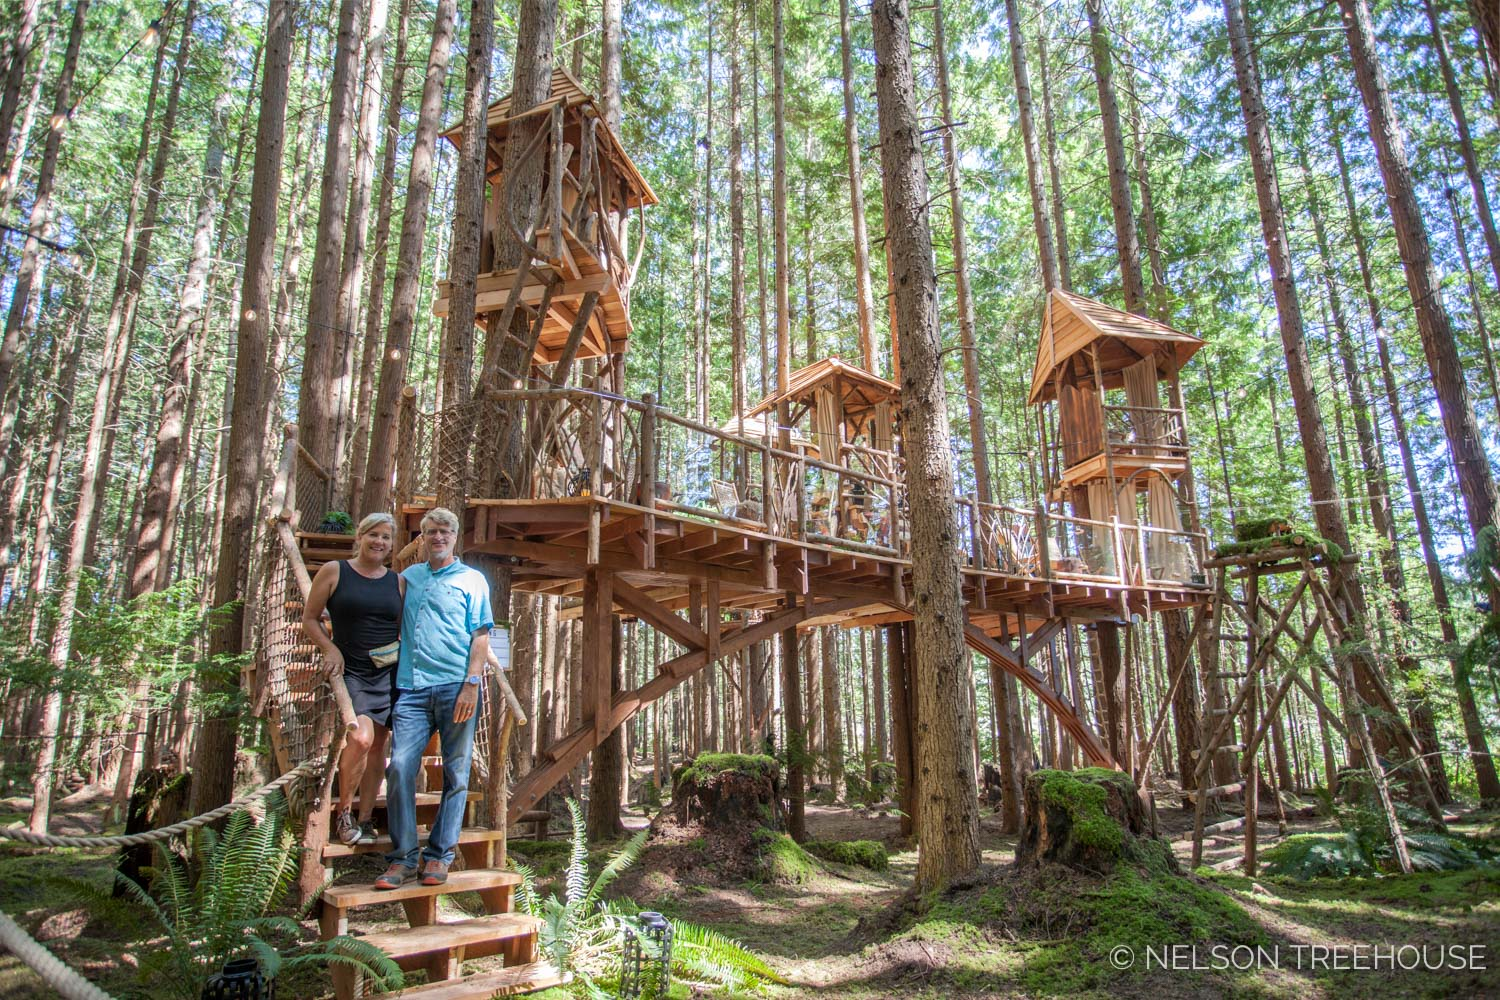 Treetop-Movie-Theater-2018-Nelson-Treehouse-21.jpg